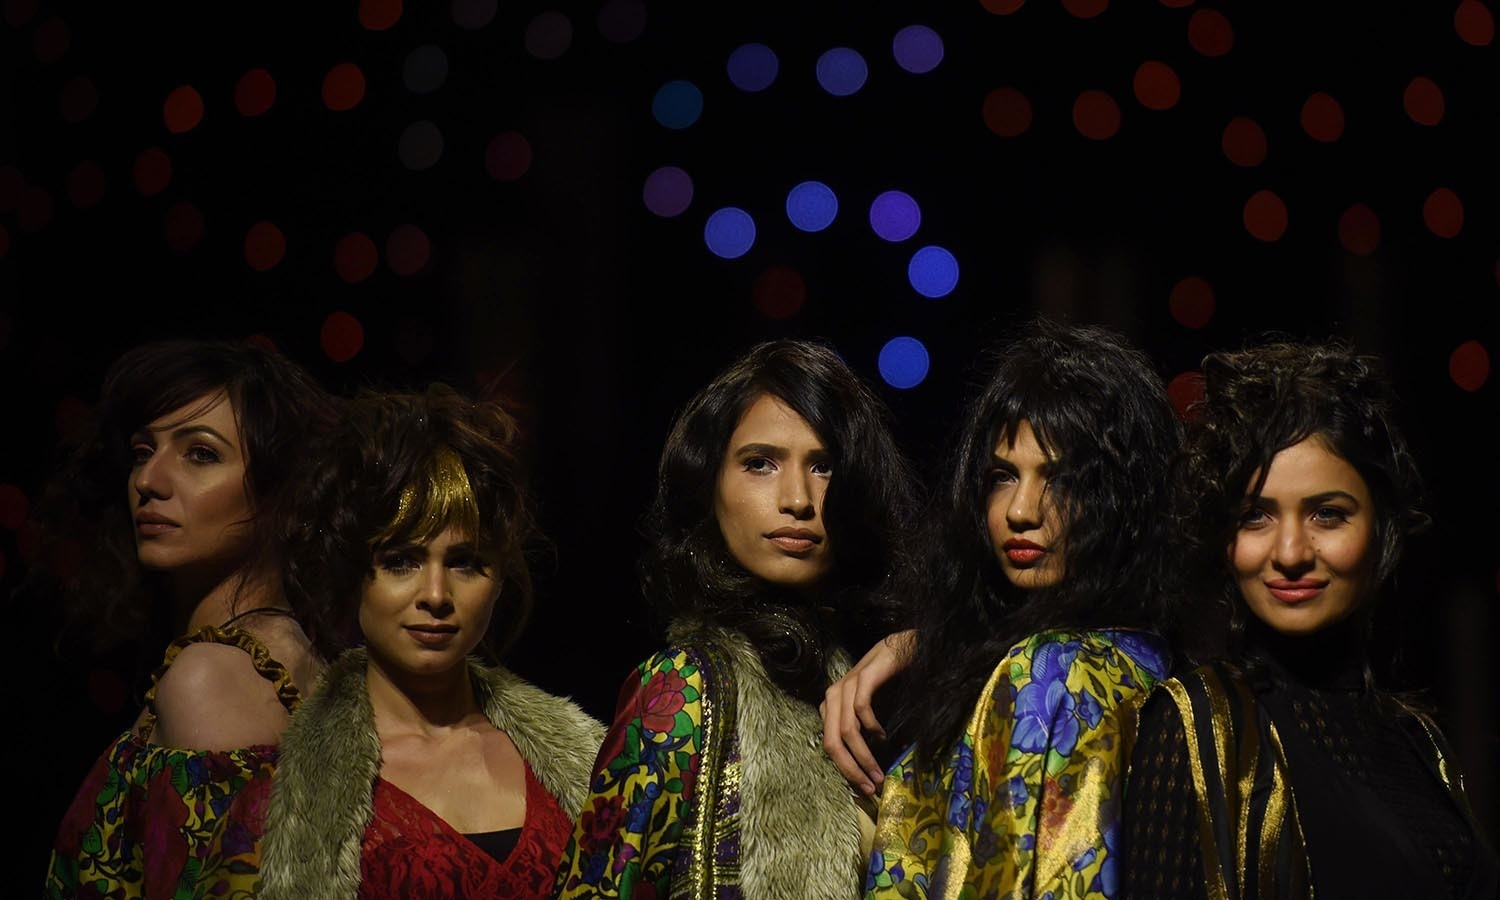 Models present creations by designer Tony&Guy on the first day of the Fashion Pakistan Week in Karachi. — AFP